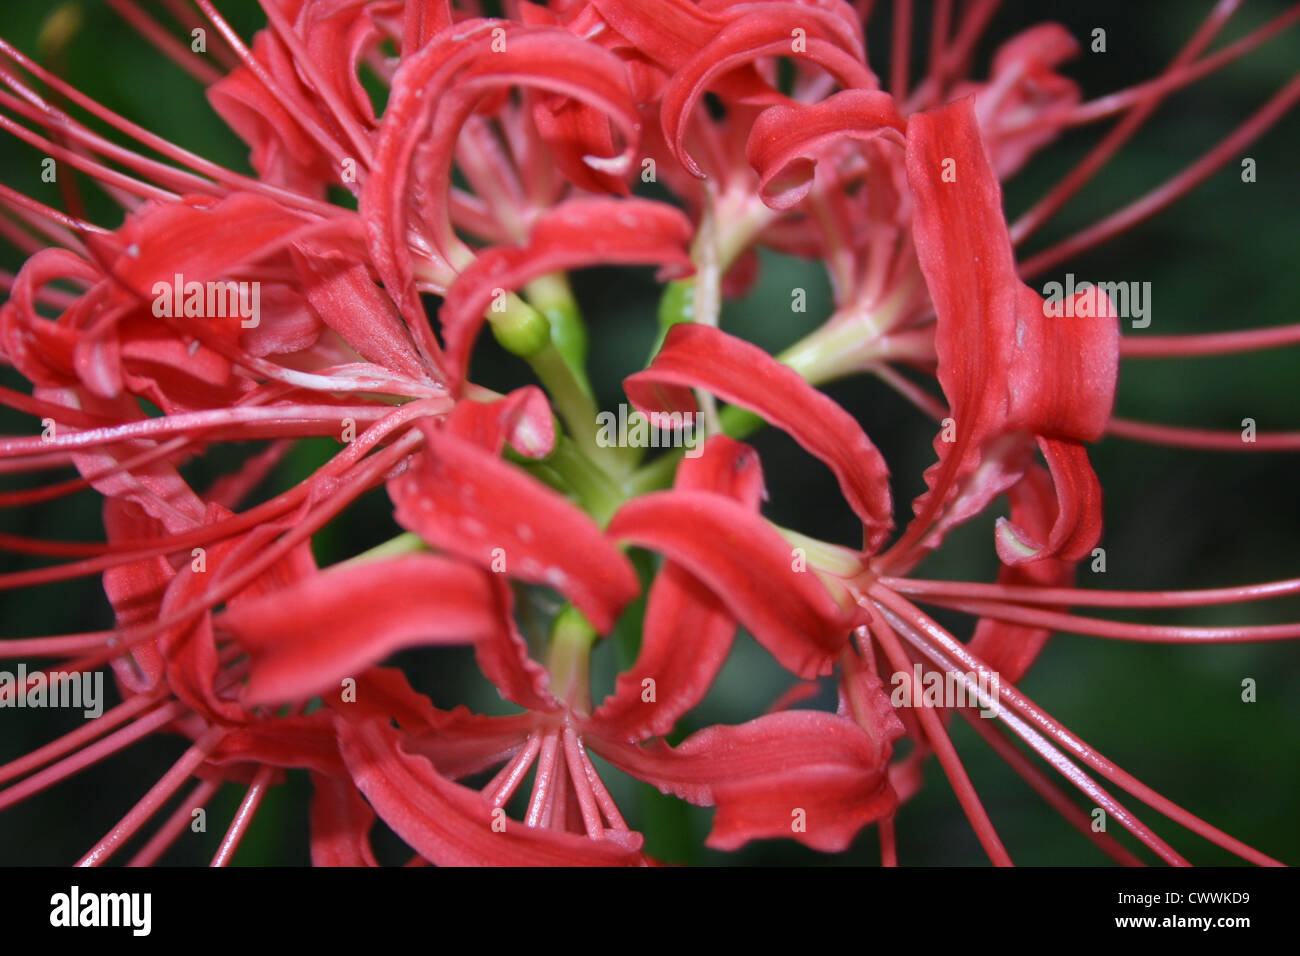 Red spider lily flower picture art print color reds photographic red spider lily flower picture art print color reds photographic photograph botanical prints of flowers izmirmasajfo Choice Image